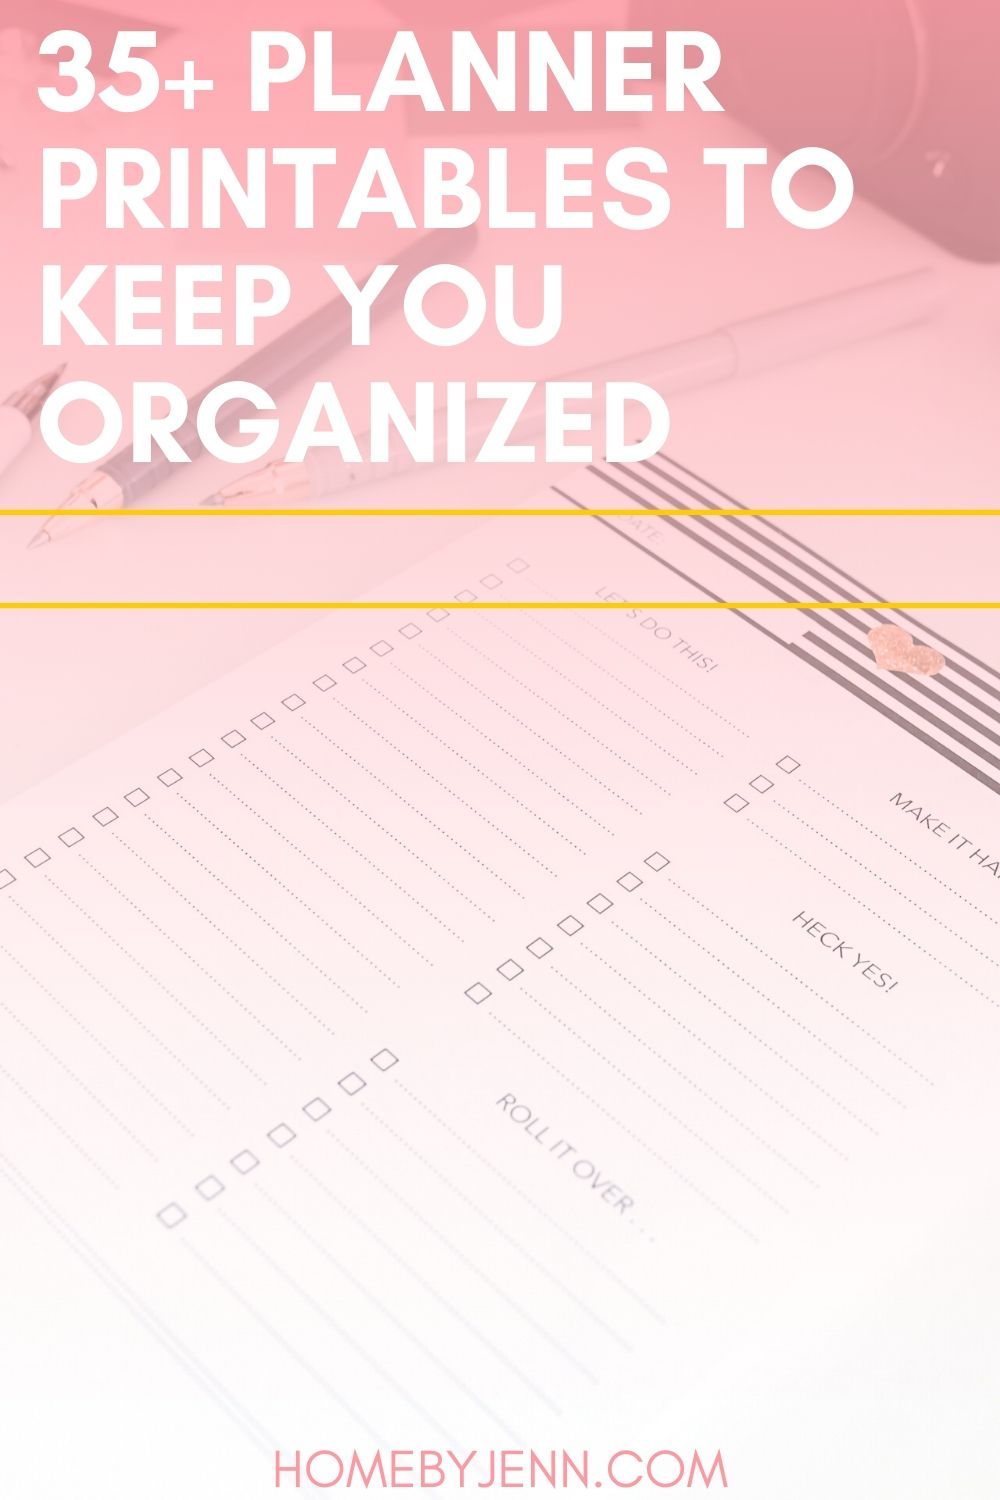 Looking for a few free printable planners to help you get organized and on track? With these 35 different options, you can't go wrong! #freeprintableplanners #homebyjenn #organization #planners via @homebyjenn